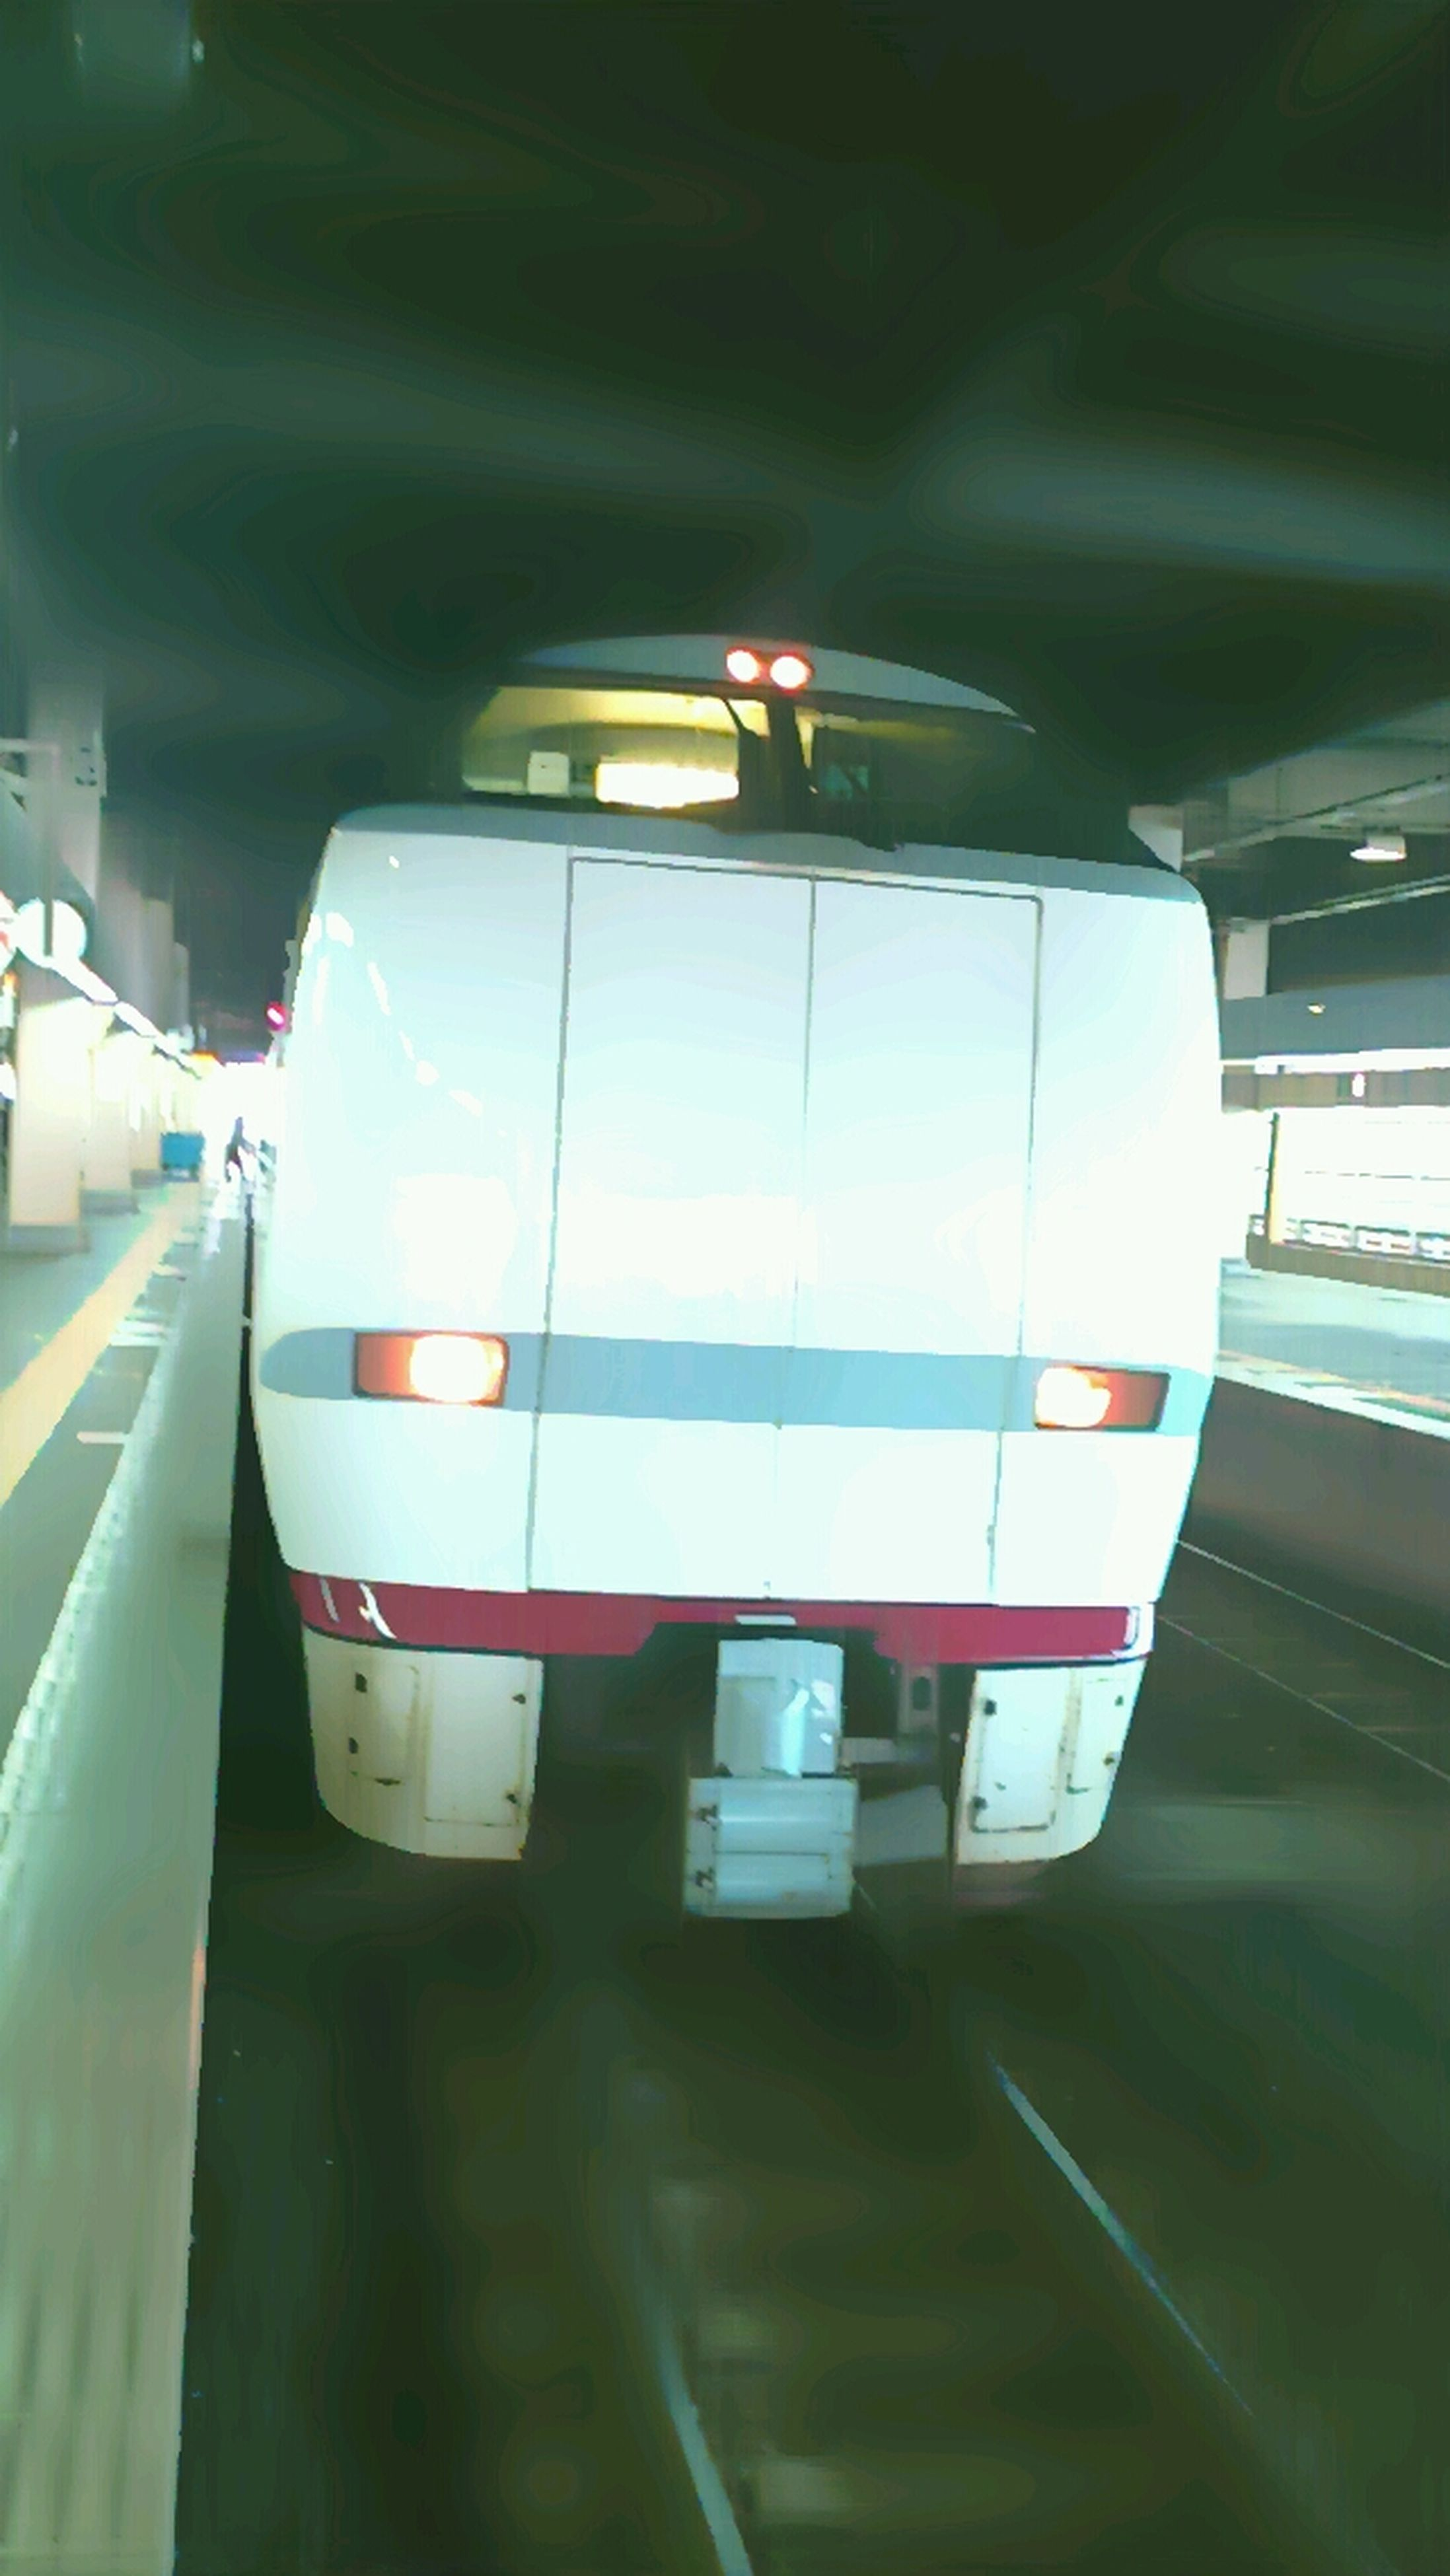 transportation, mode of transport, vehicle interior, car, land vehicle, public transportation, glass - material, travel, indoors, airplane, transparent, window, on the move, reflection, air vehicle, journey, airport, train - vehicle, no people, bus